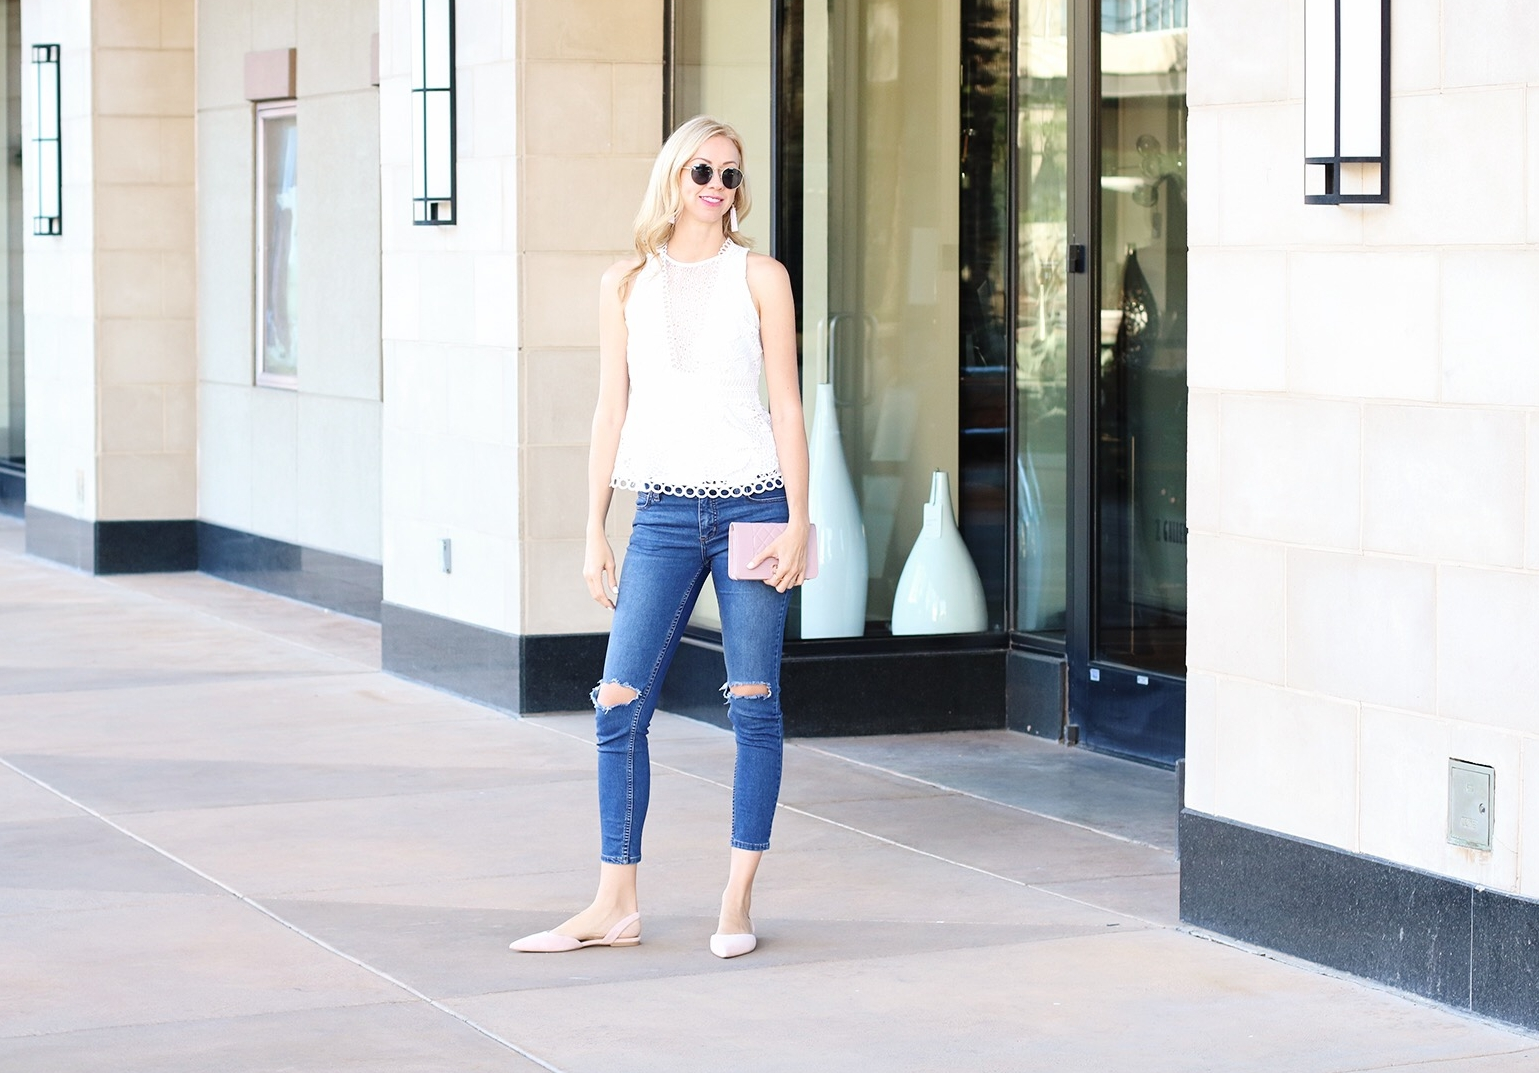 top-shop-white-lace-peplum-top-pink-suede-slingback-flats-rippd-jeans.jpg